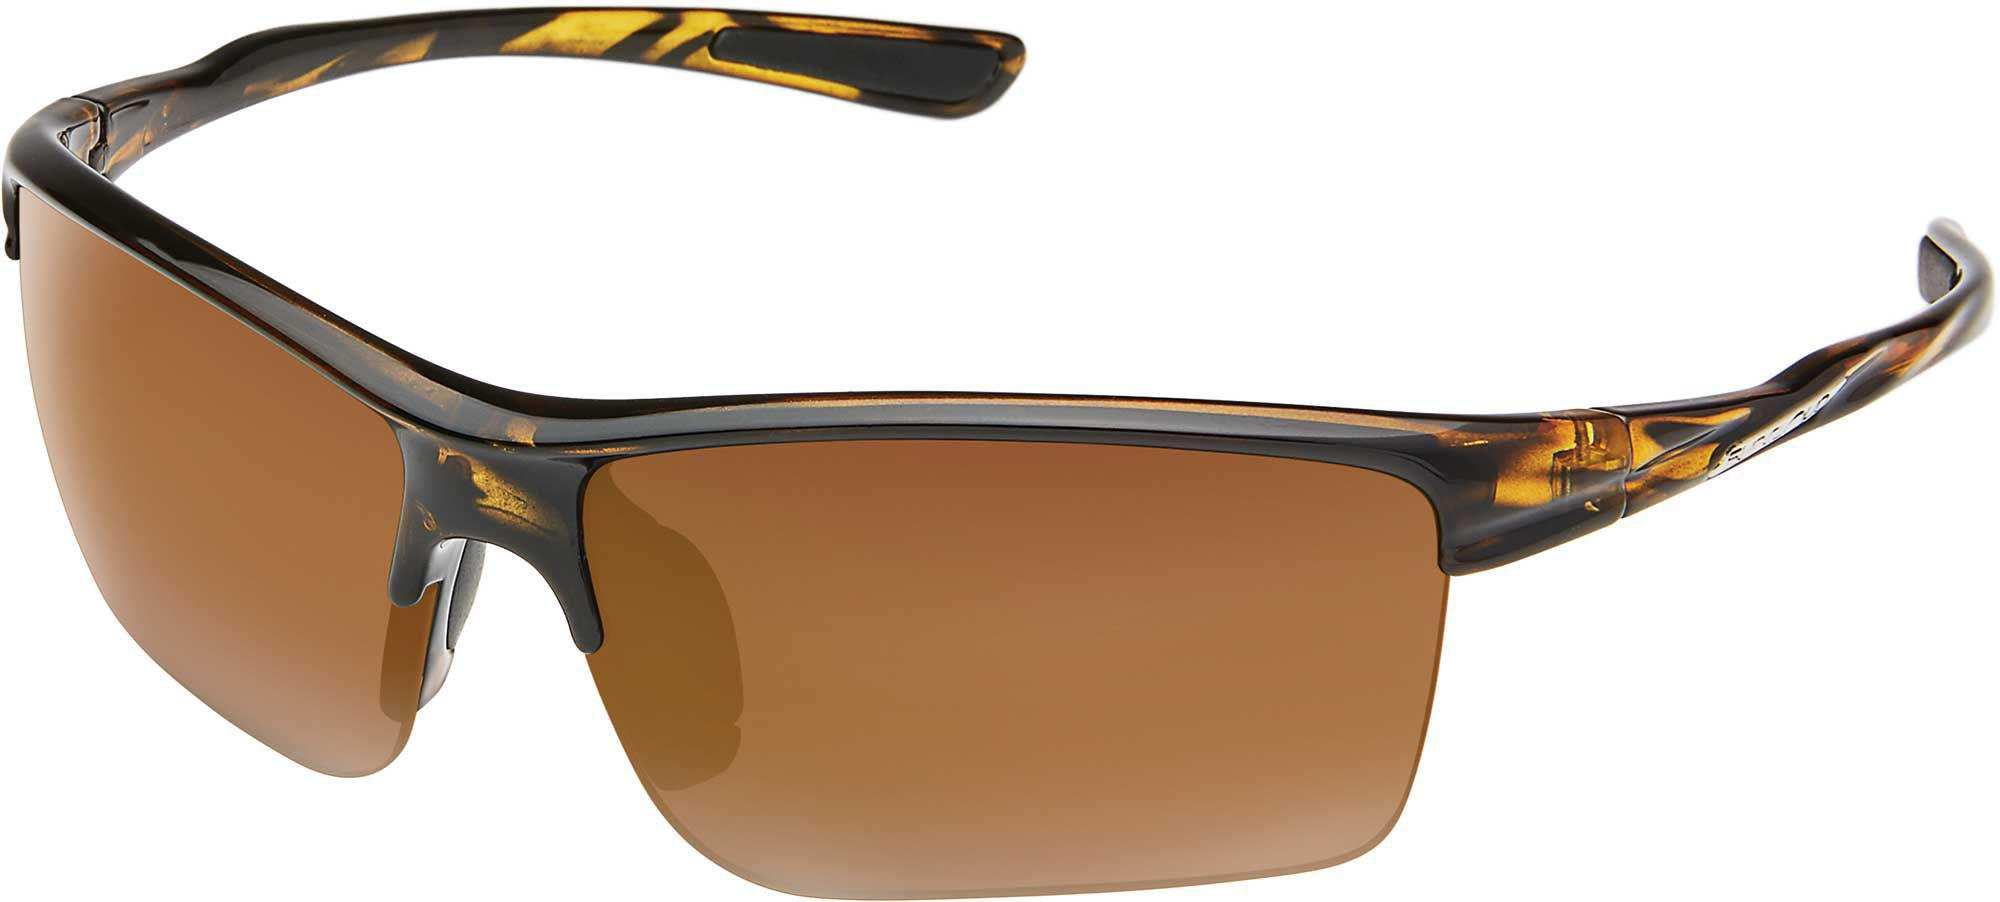 b7b9933ccc Lyst - Smith Optics Sable Polarized Sunglasses in Brown for Men